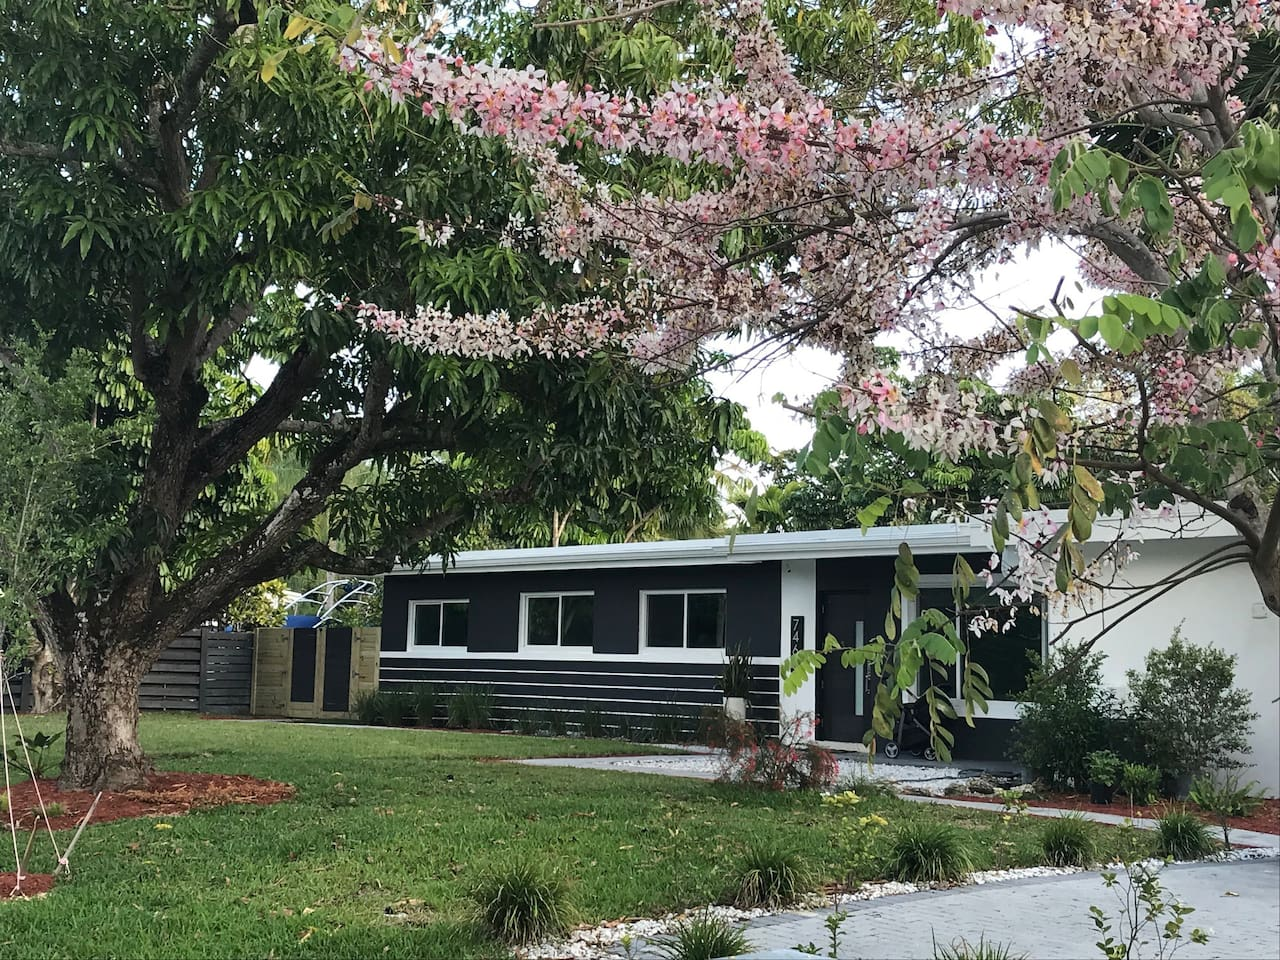 Residential quiet neighborhood. Private access of the rooms from each side of the house.